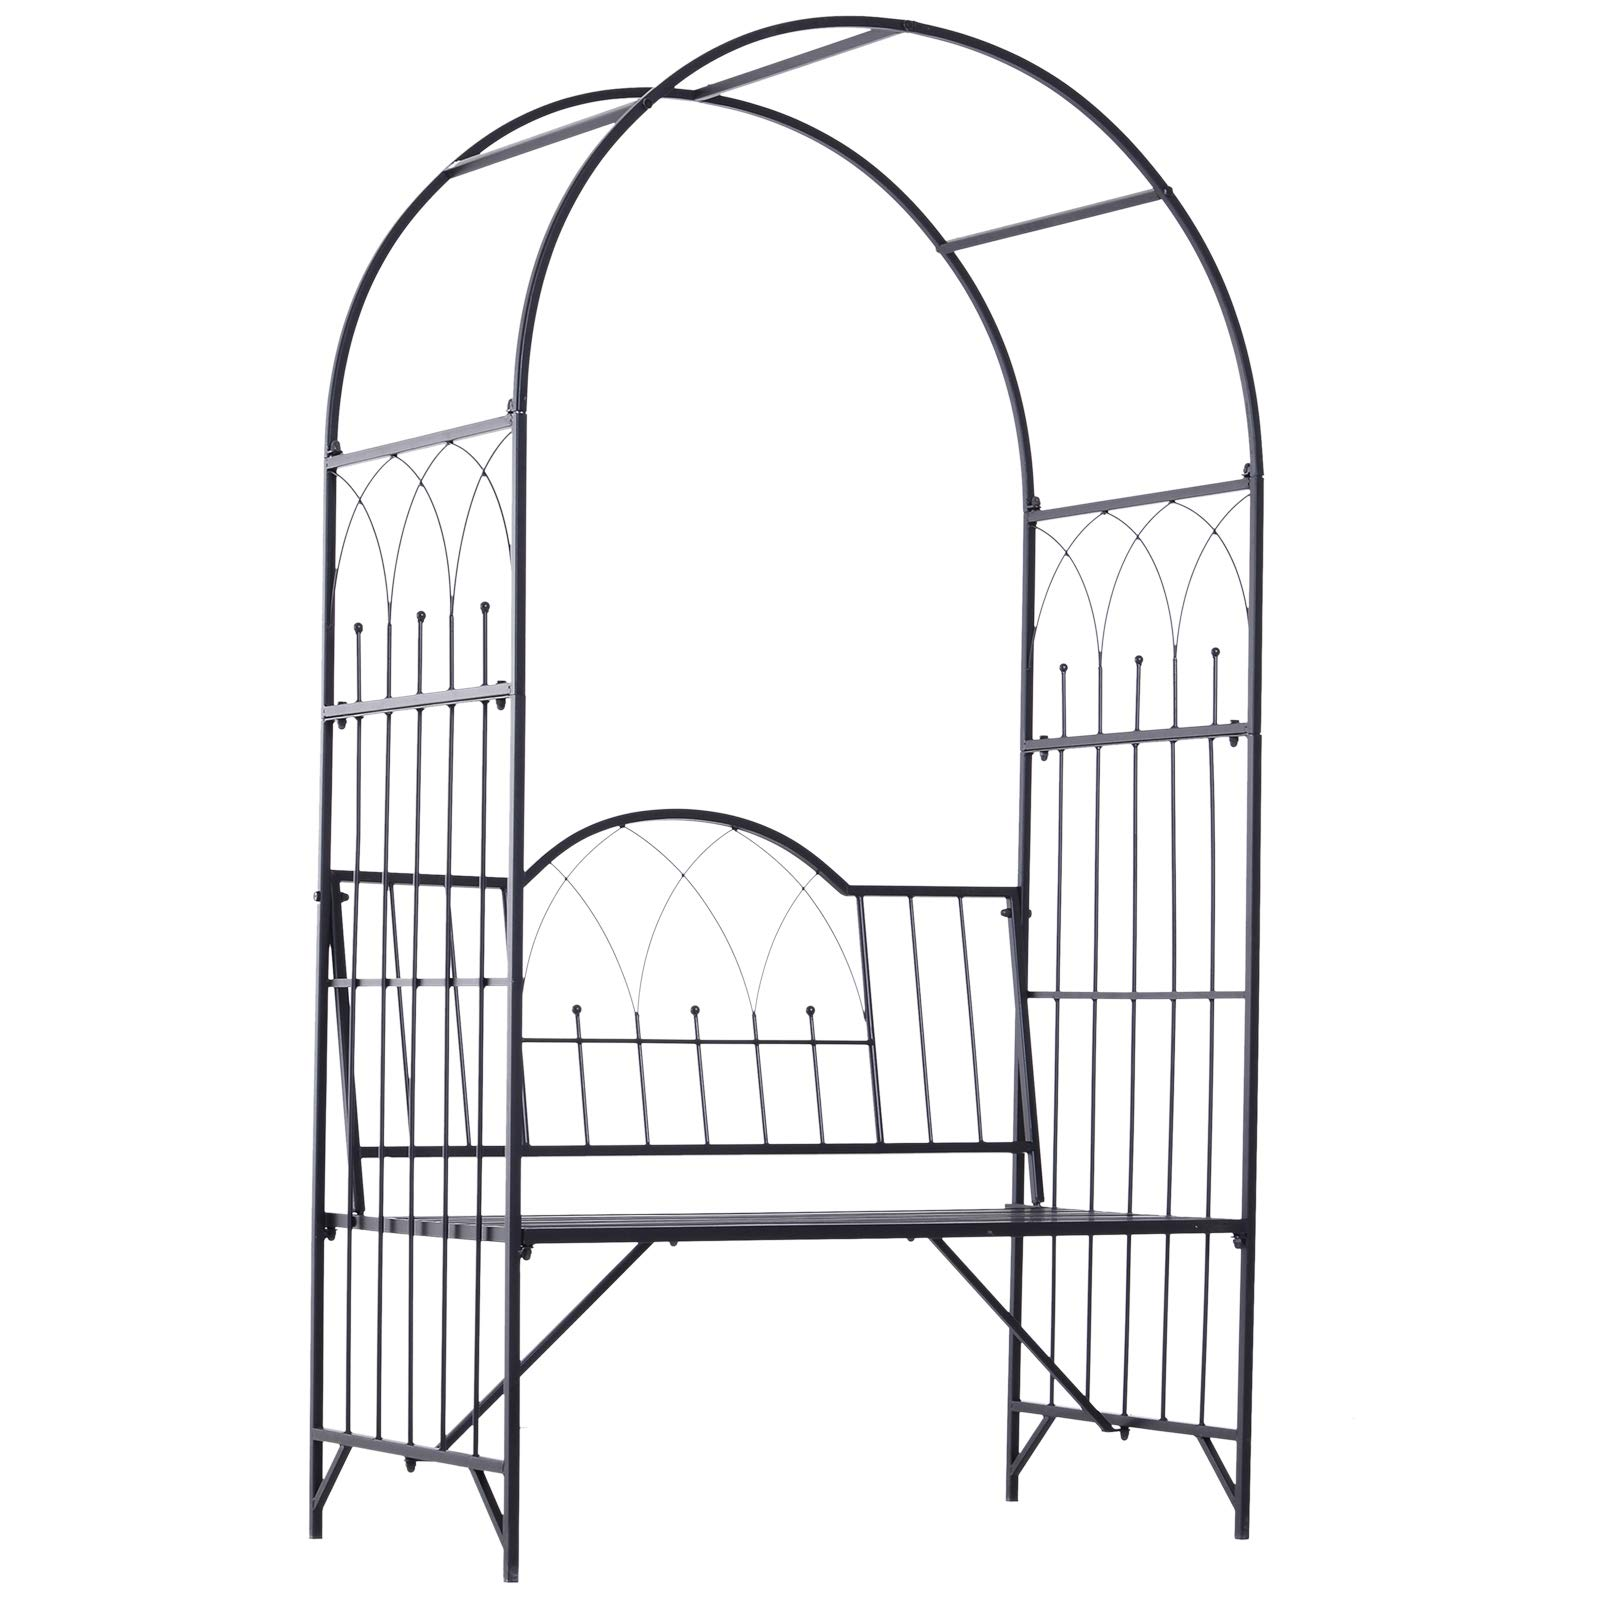 Outsunny Outdoor Garden Arbor Arch Steel Metal with Bench Seat - Black